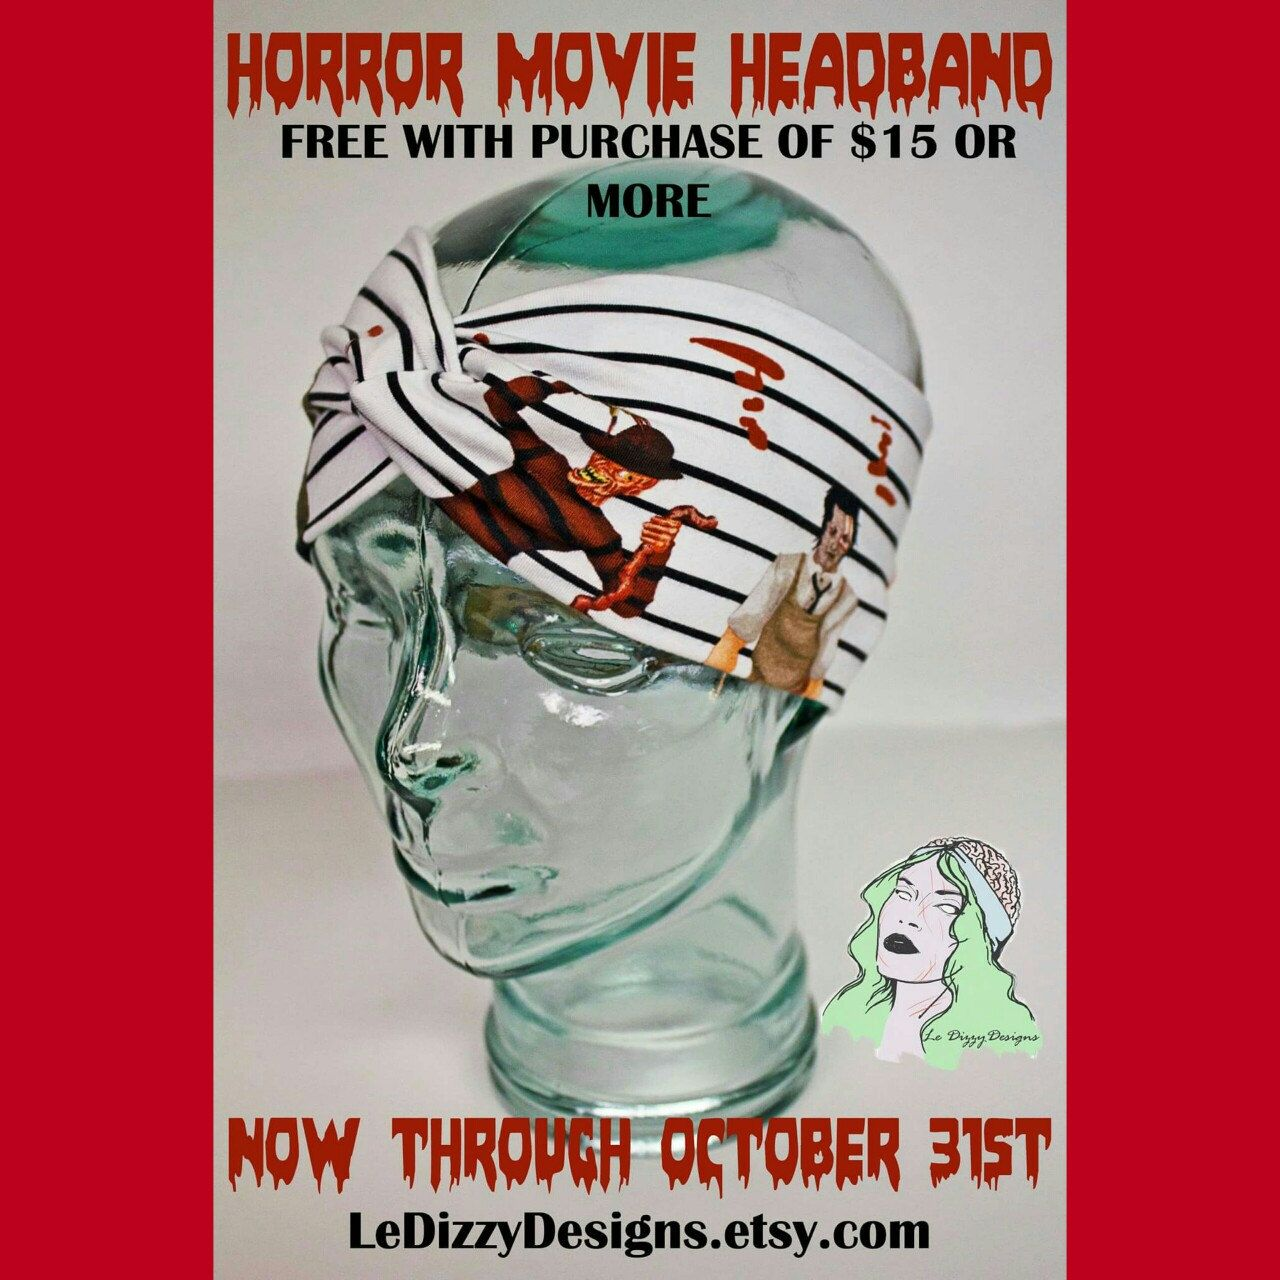 Free Horror Movie Headband with any order of 15 or more